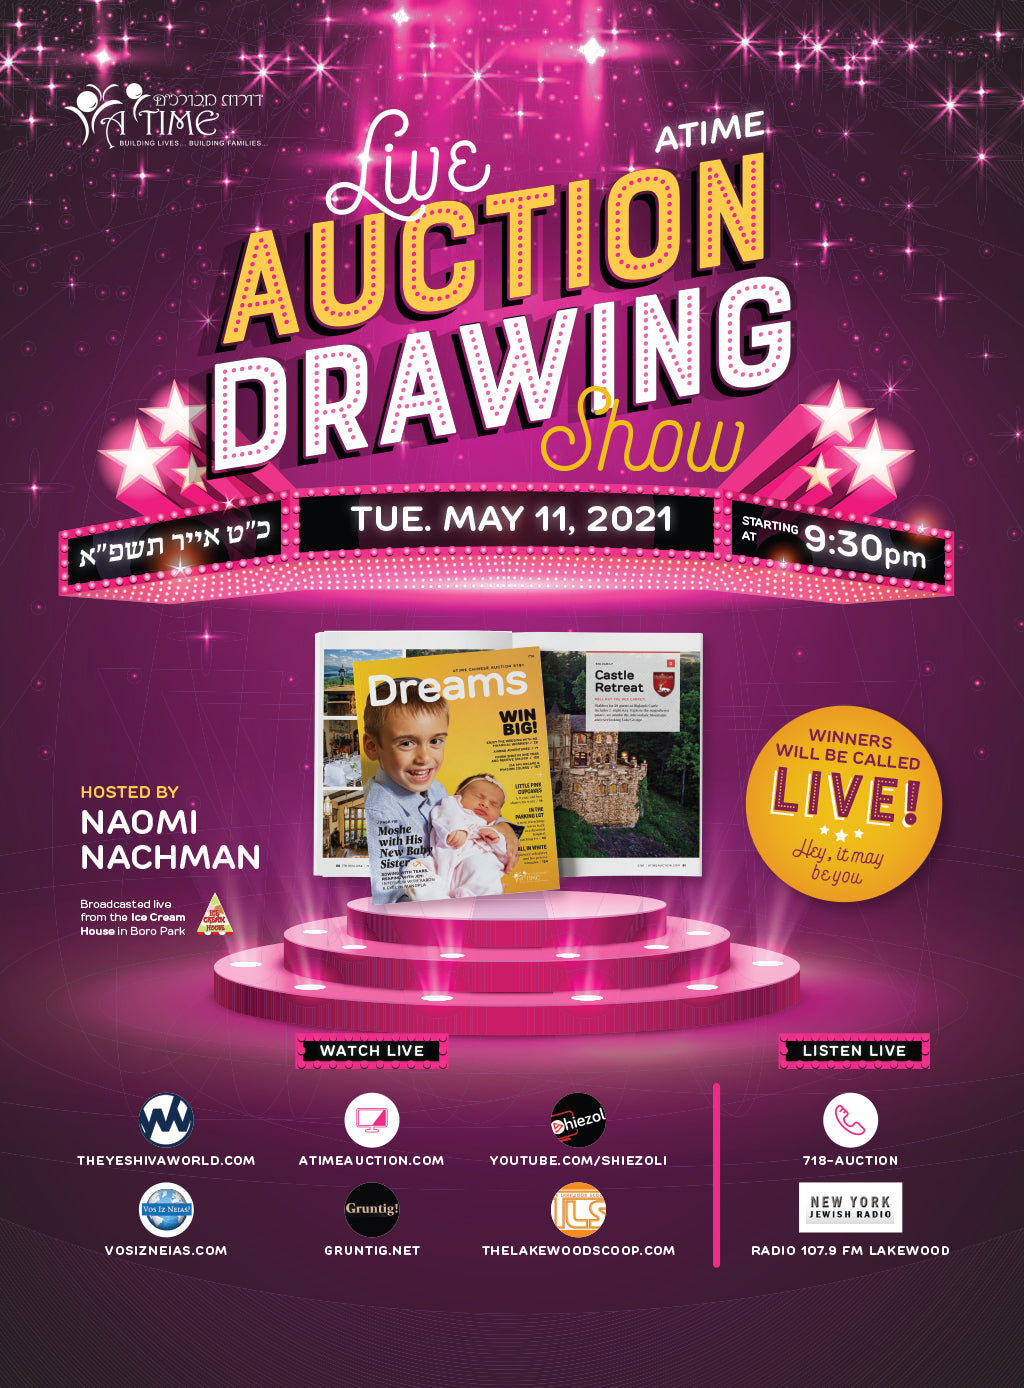 Live Auction Drawing